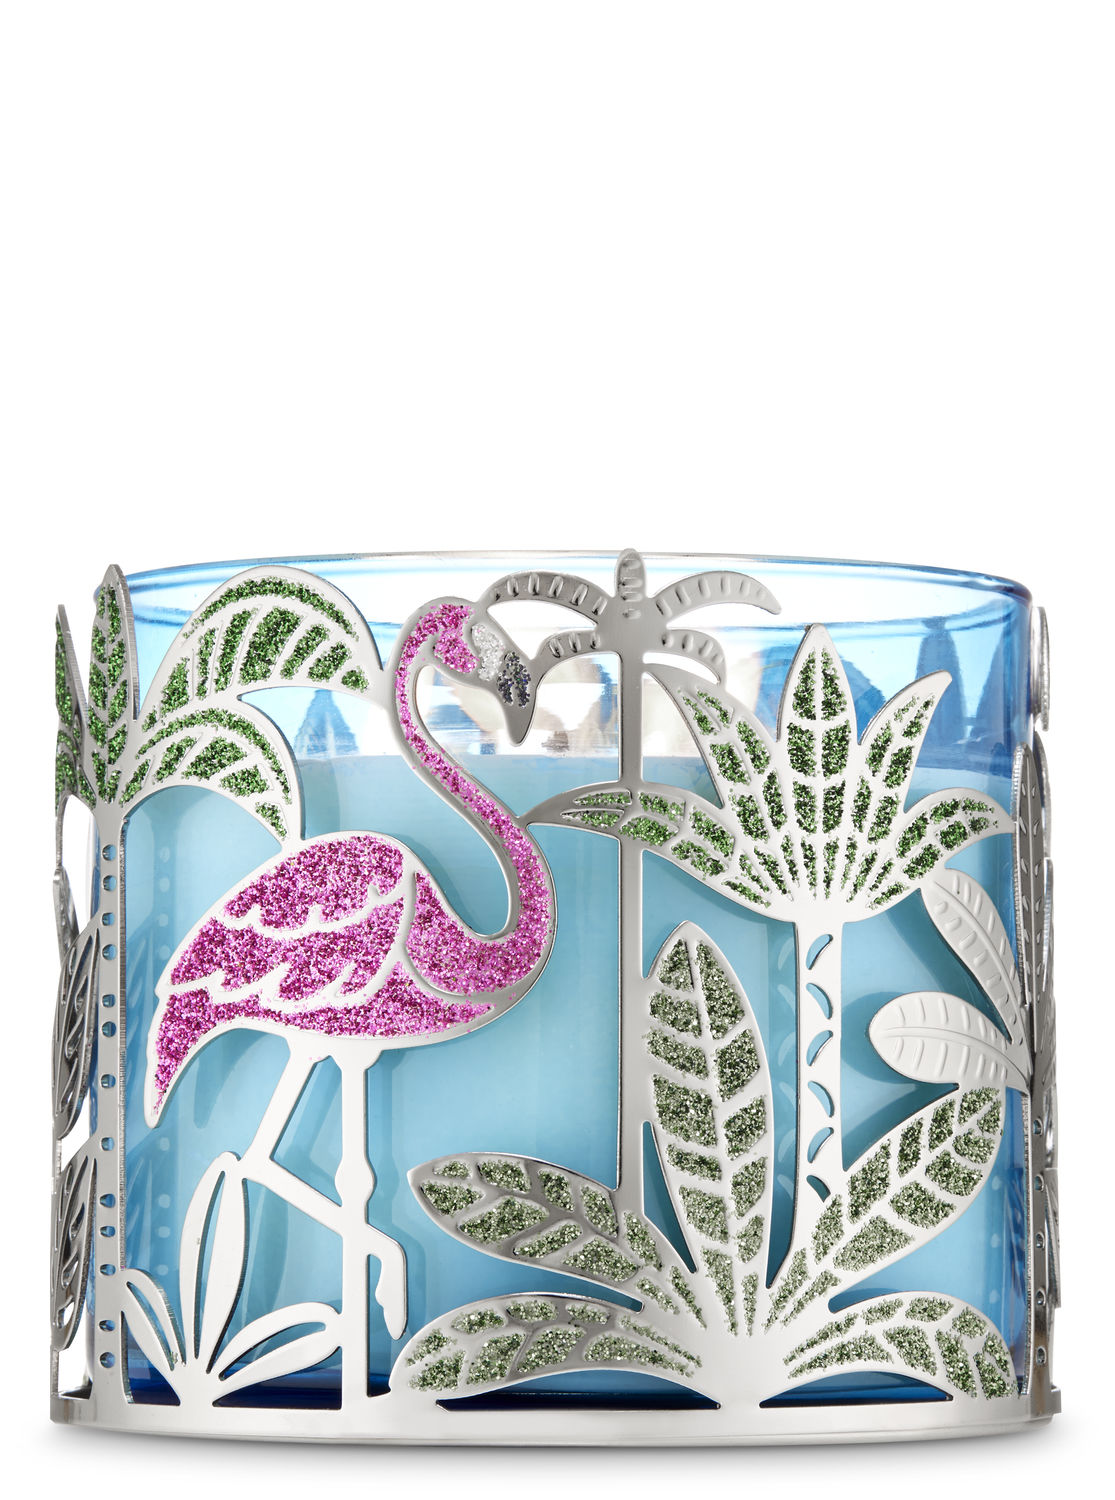 BATH /& BODY WORKS BLUE IRIDESCENT SEA TURTLE MAGNET LARGE 3 WICK CANDLE DECOR